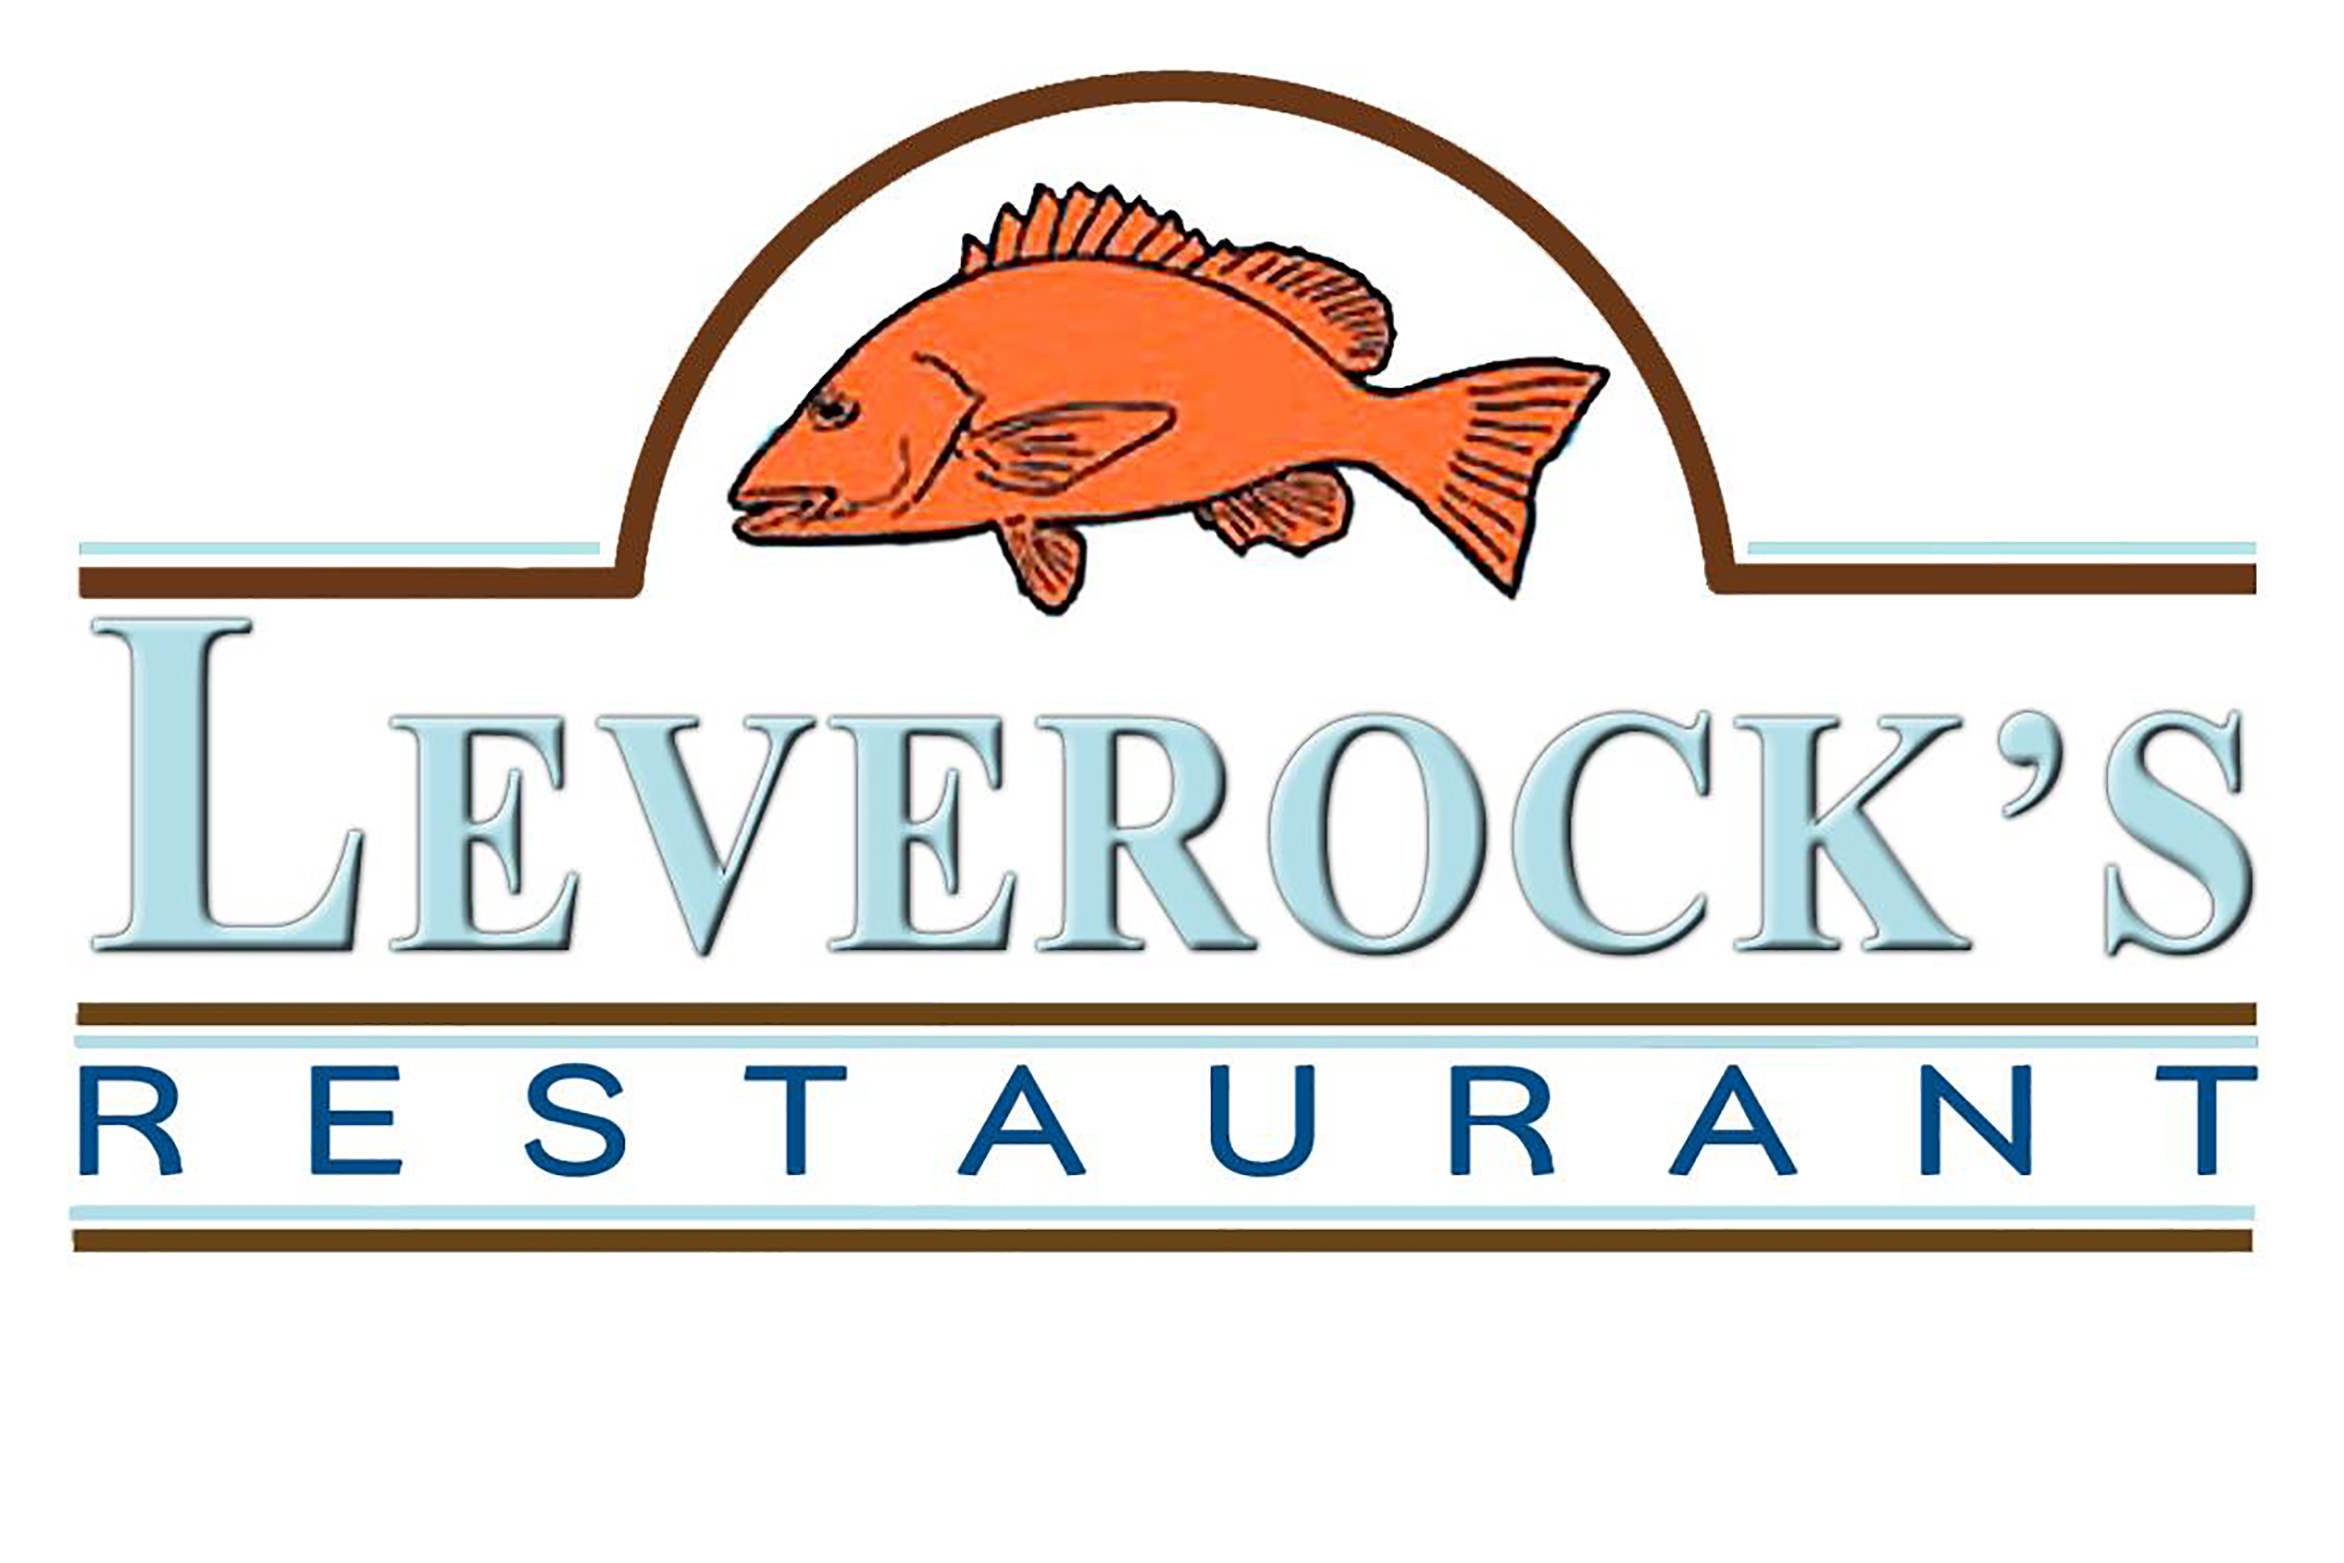 Leverock's Seafood House